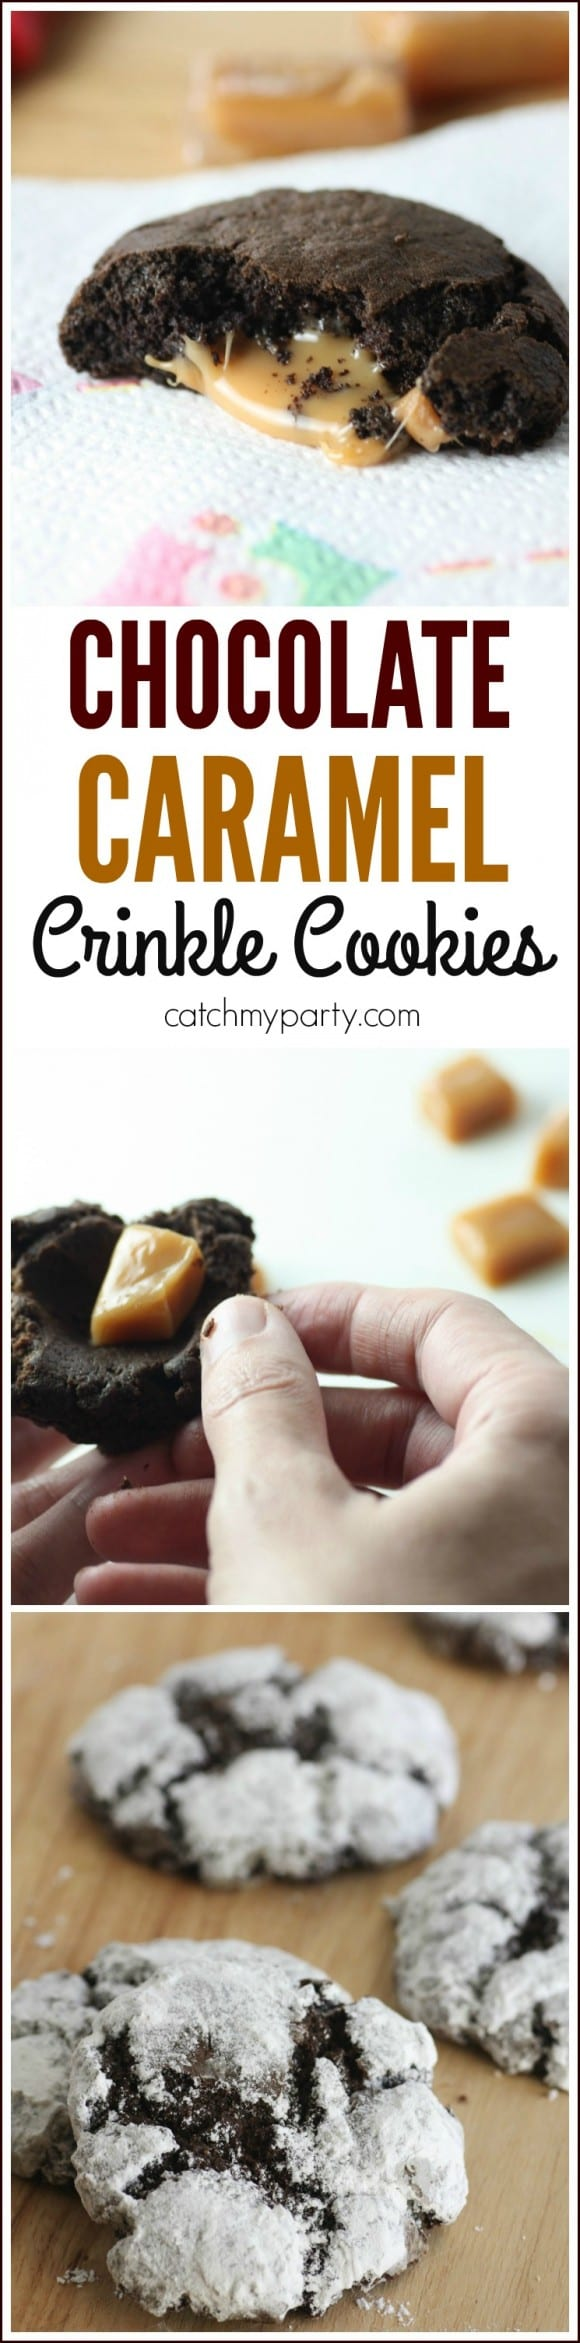 Easy Caramel Chocolate Crinkle Cookie Recipe | CatchMyParty.com